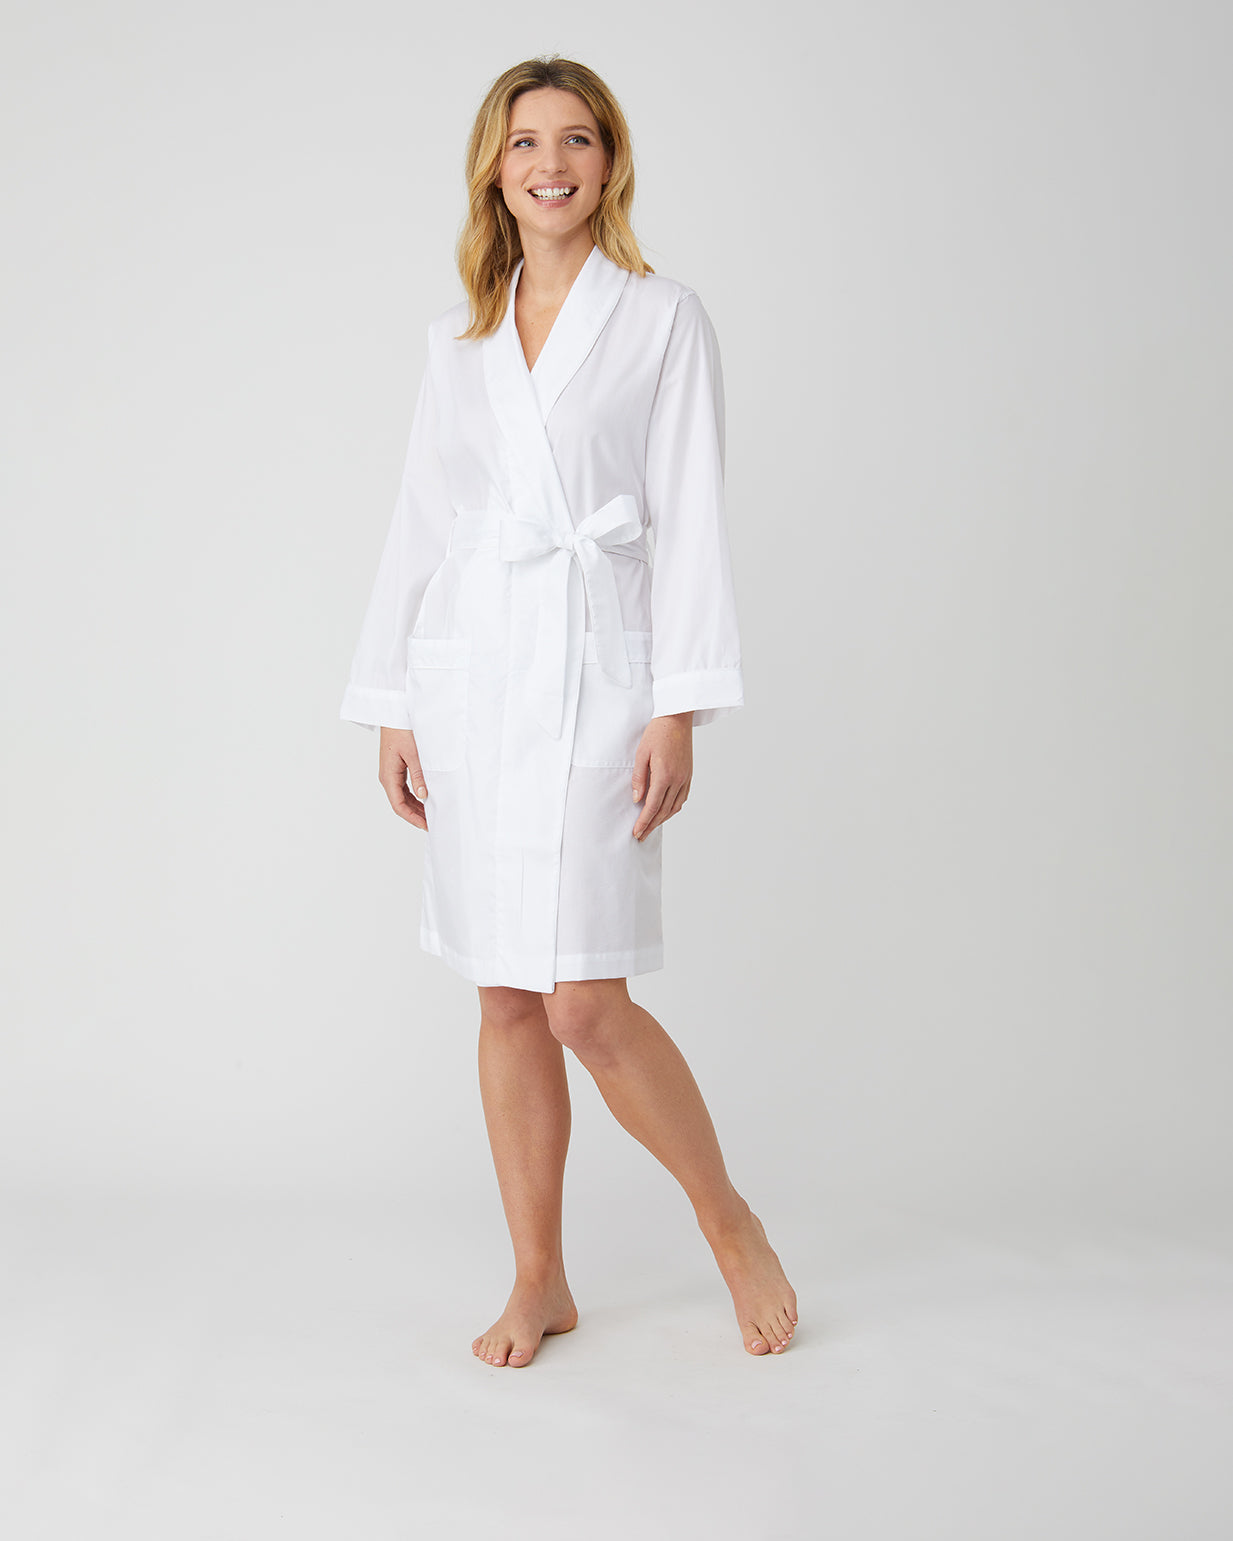 Women's White Jacquard Short Dressing Gown | Bonsoir of London